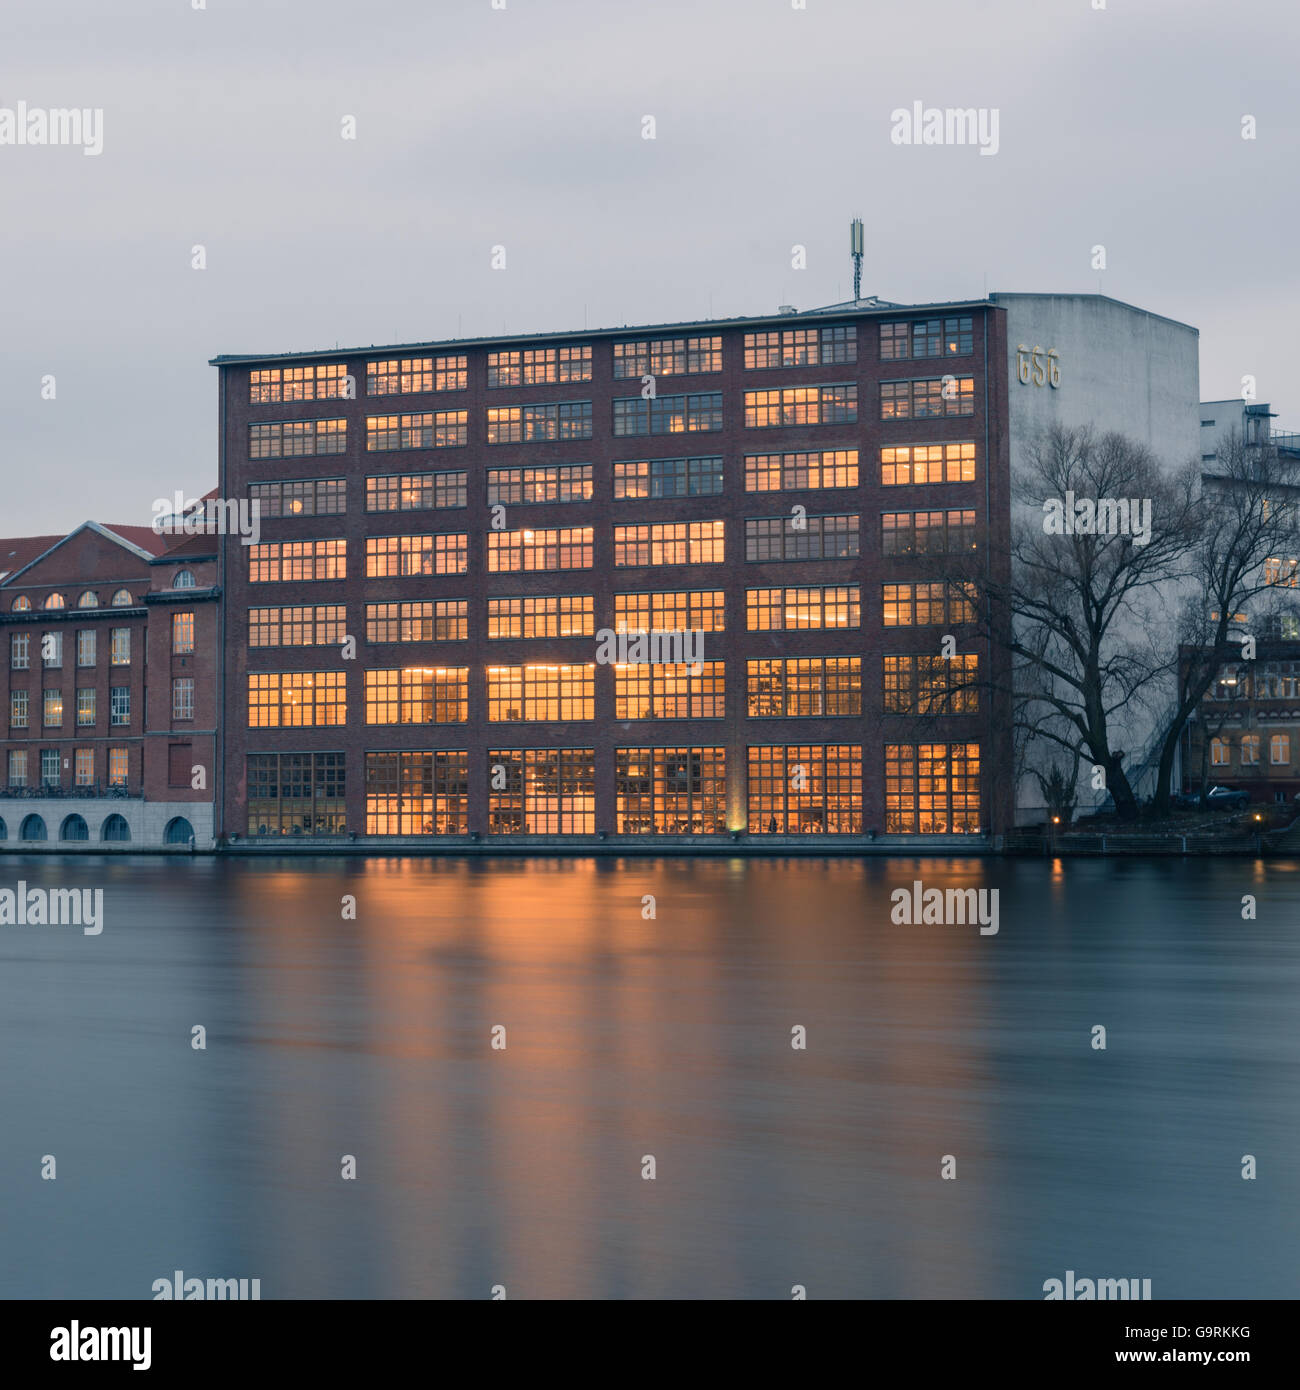 Berlin, Germany. January 15, 2014. Business Buildings located at Berlins River Spree. Longtime Exposure, HDR Look. - Stock Image